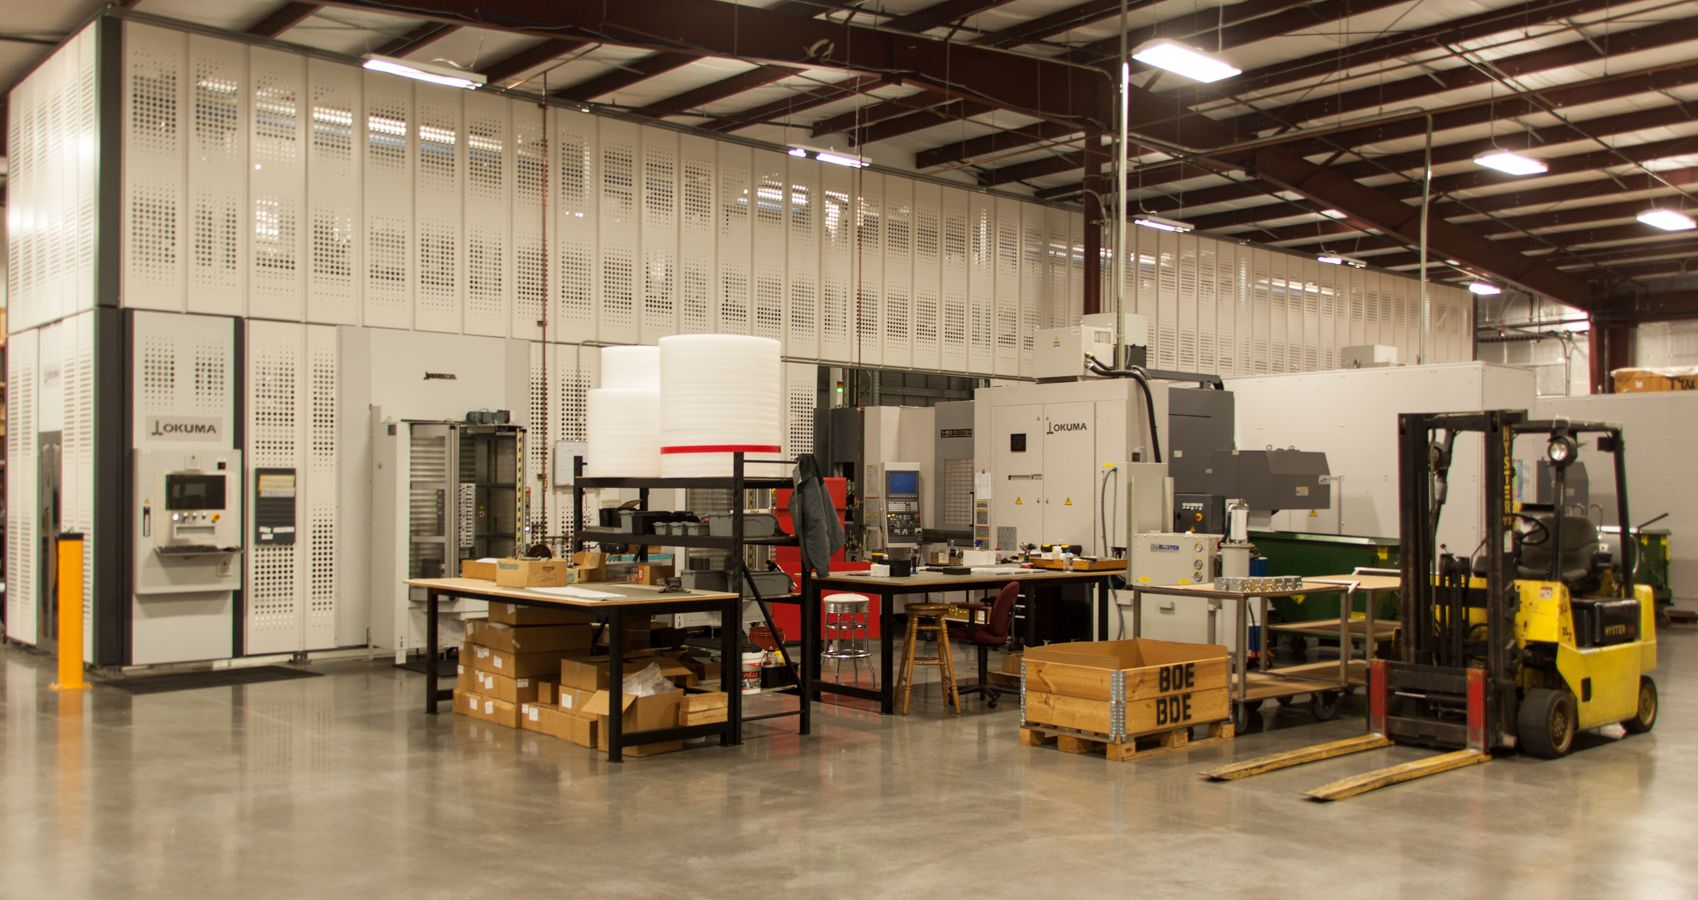 BDE Manufacturing Services